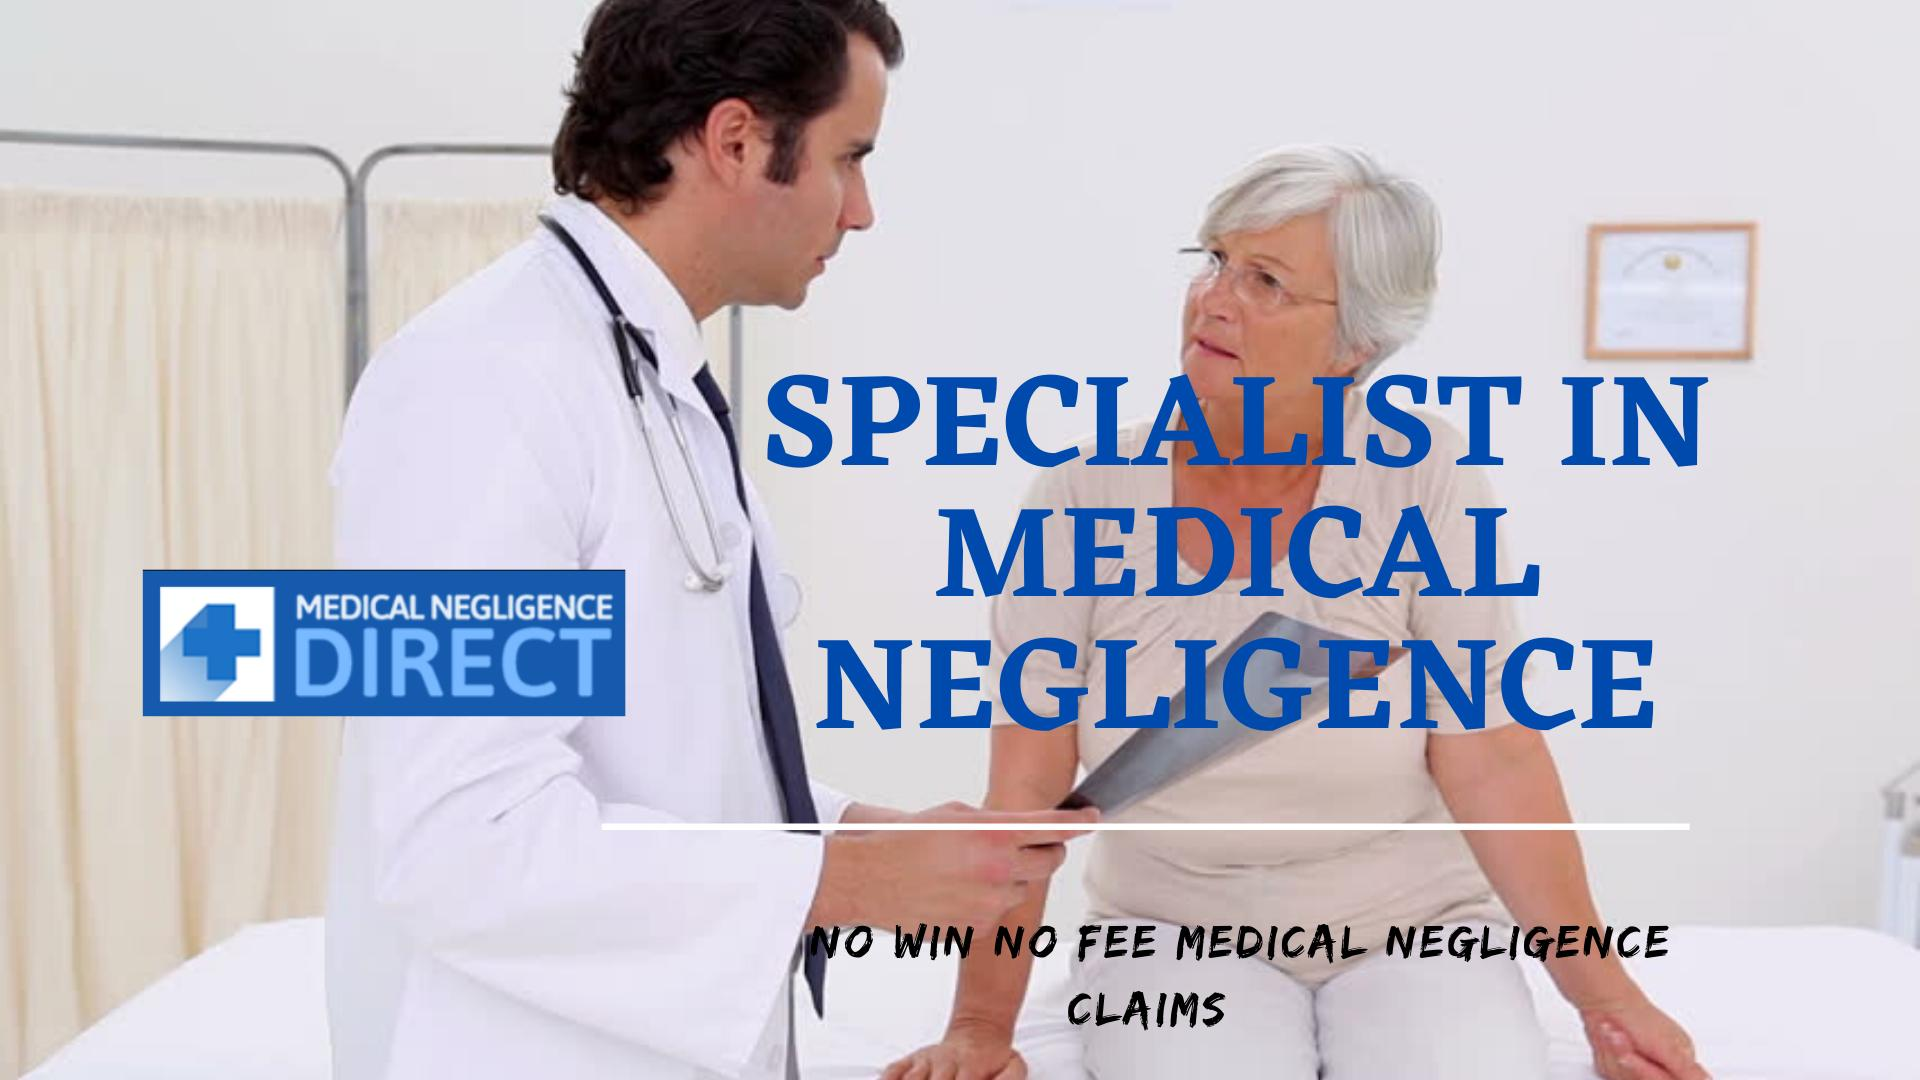 Image - Make a #MedicalNegligenceClaims with our #SpecialistMedicalNegligence Solicitors in Liverpool. Our #MedicalNe...